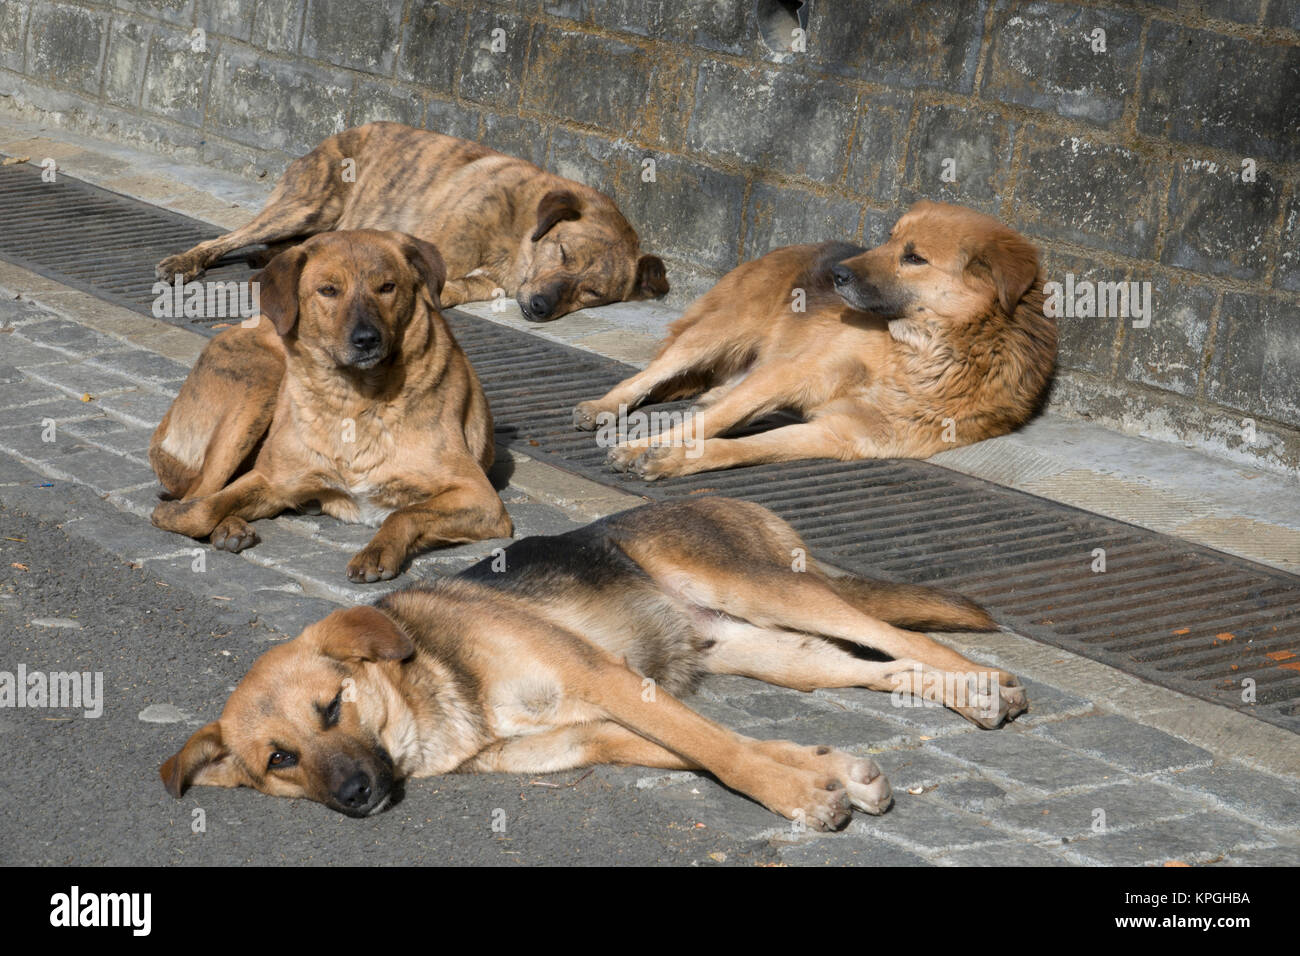 Pack of healthy looking street dogs relaxing in the sun in Shimla, India - Stock Image